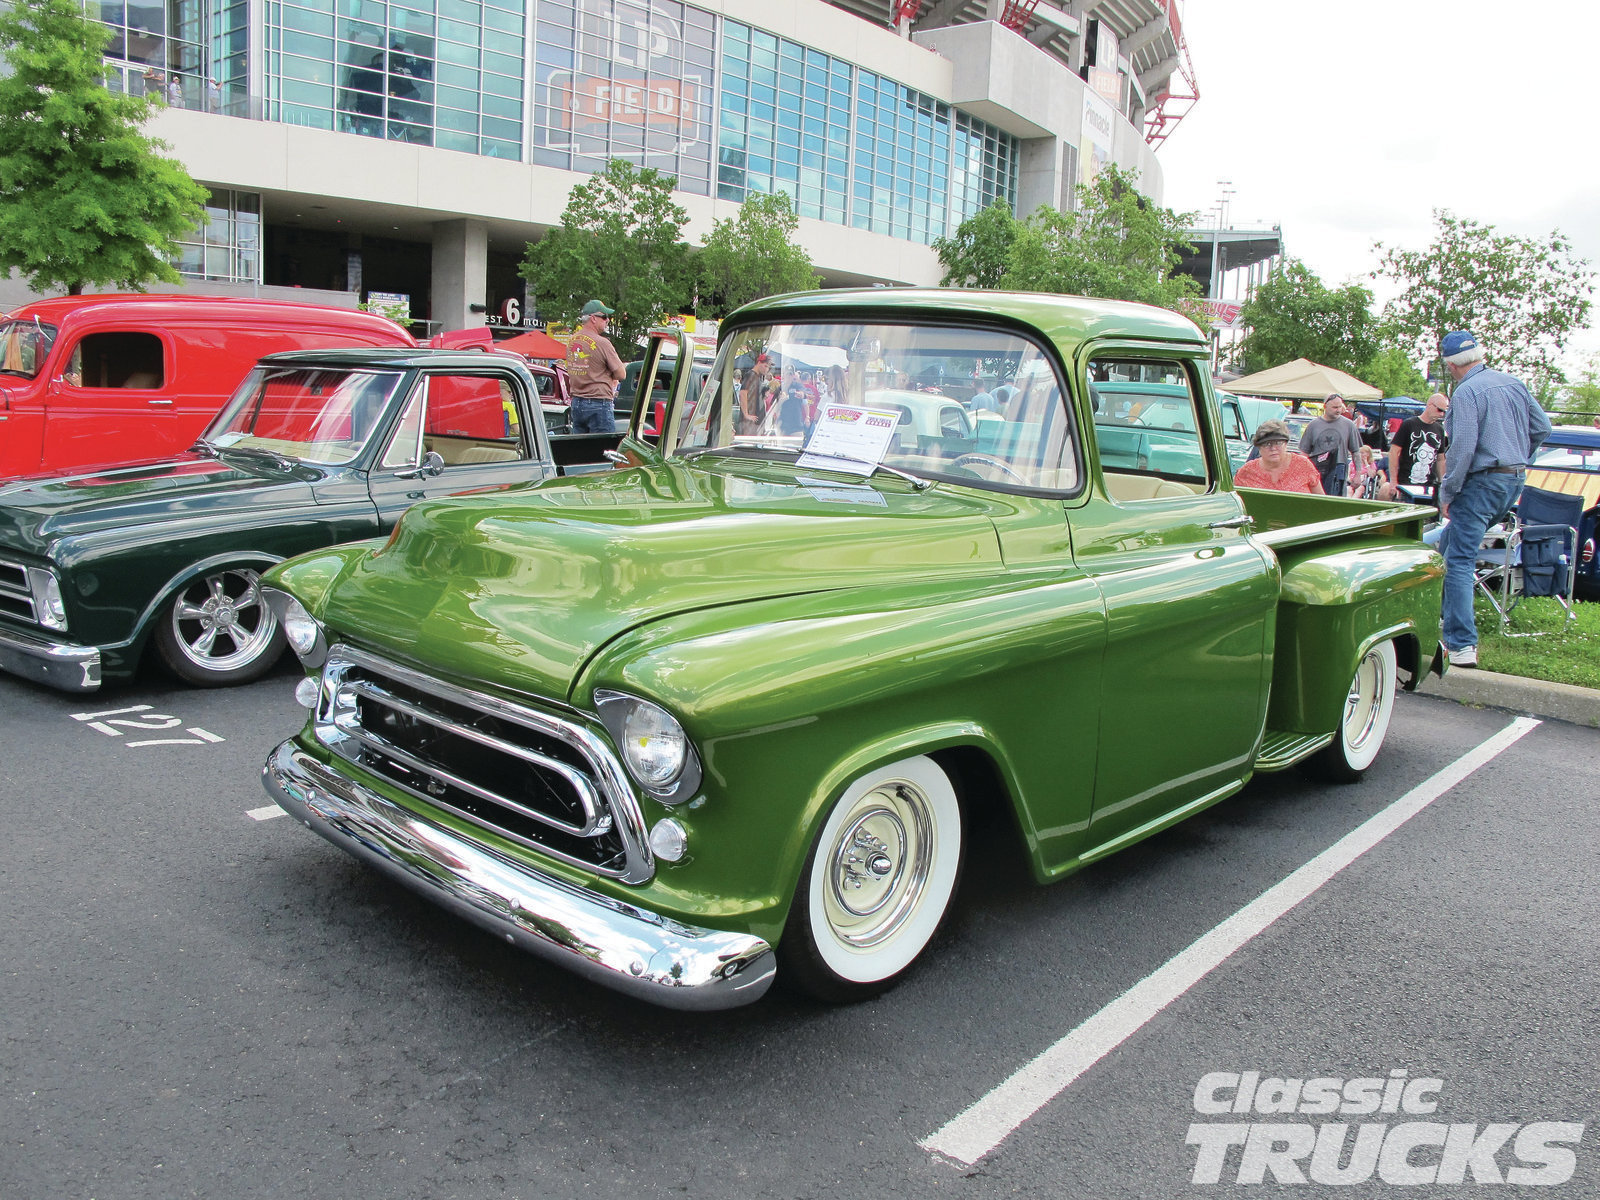 "Dickie Steven's 1956 Chevy stopped me in my tracks, not only by the way it looked, but I overheard him say it was ""Pond Scum Green"" in color. Turns out his hideous choice for the paint name was visually quite pleasing."